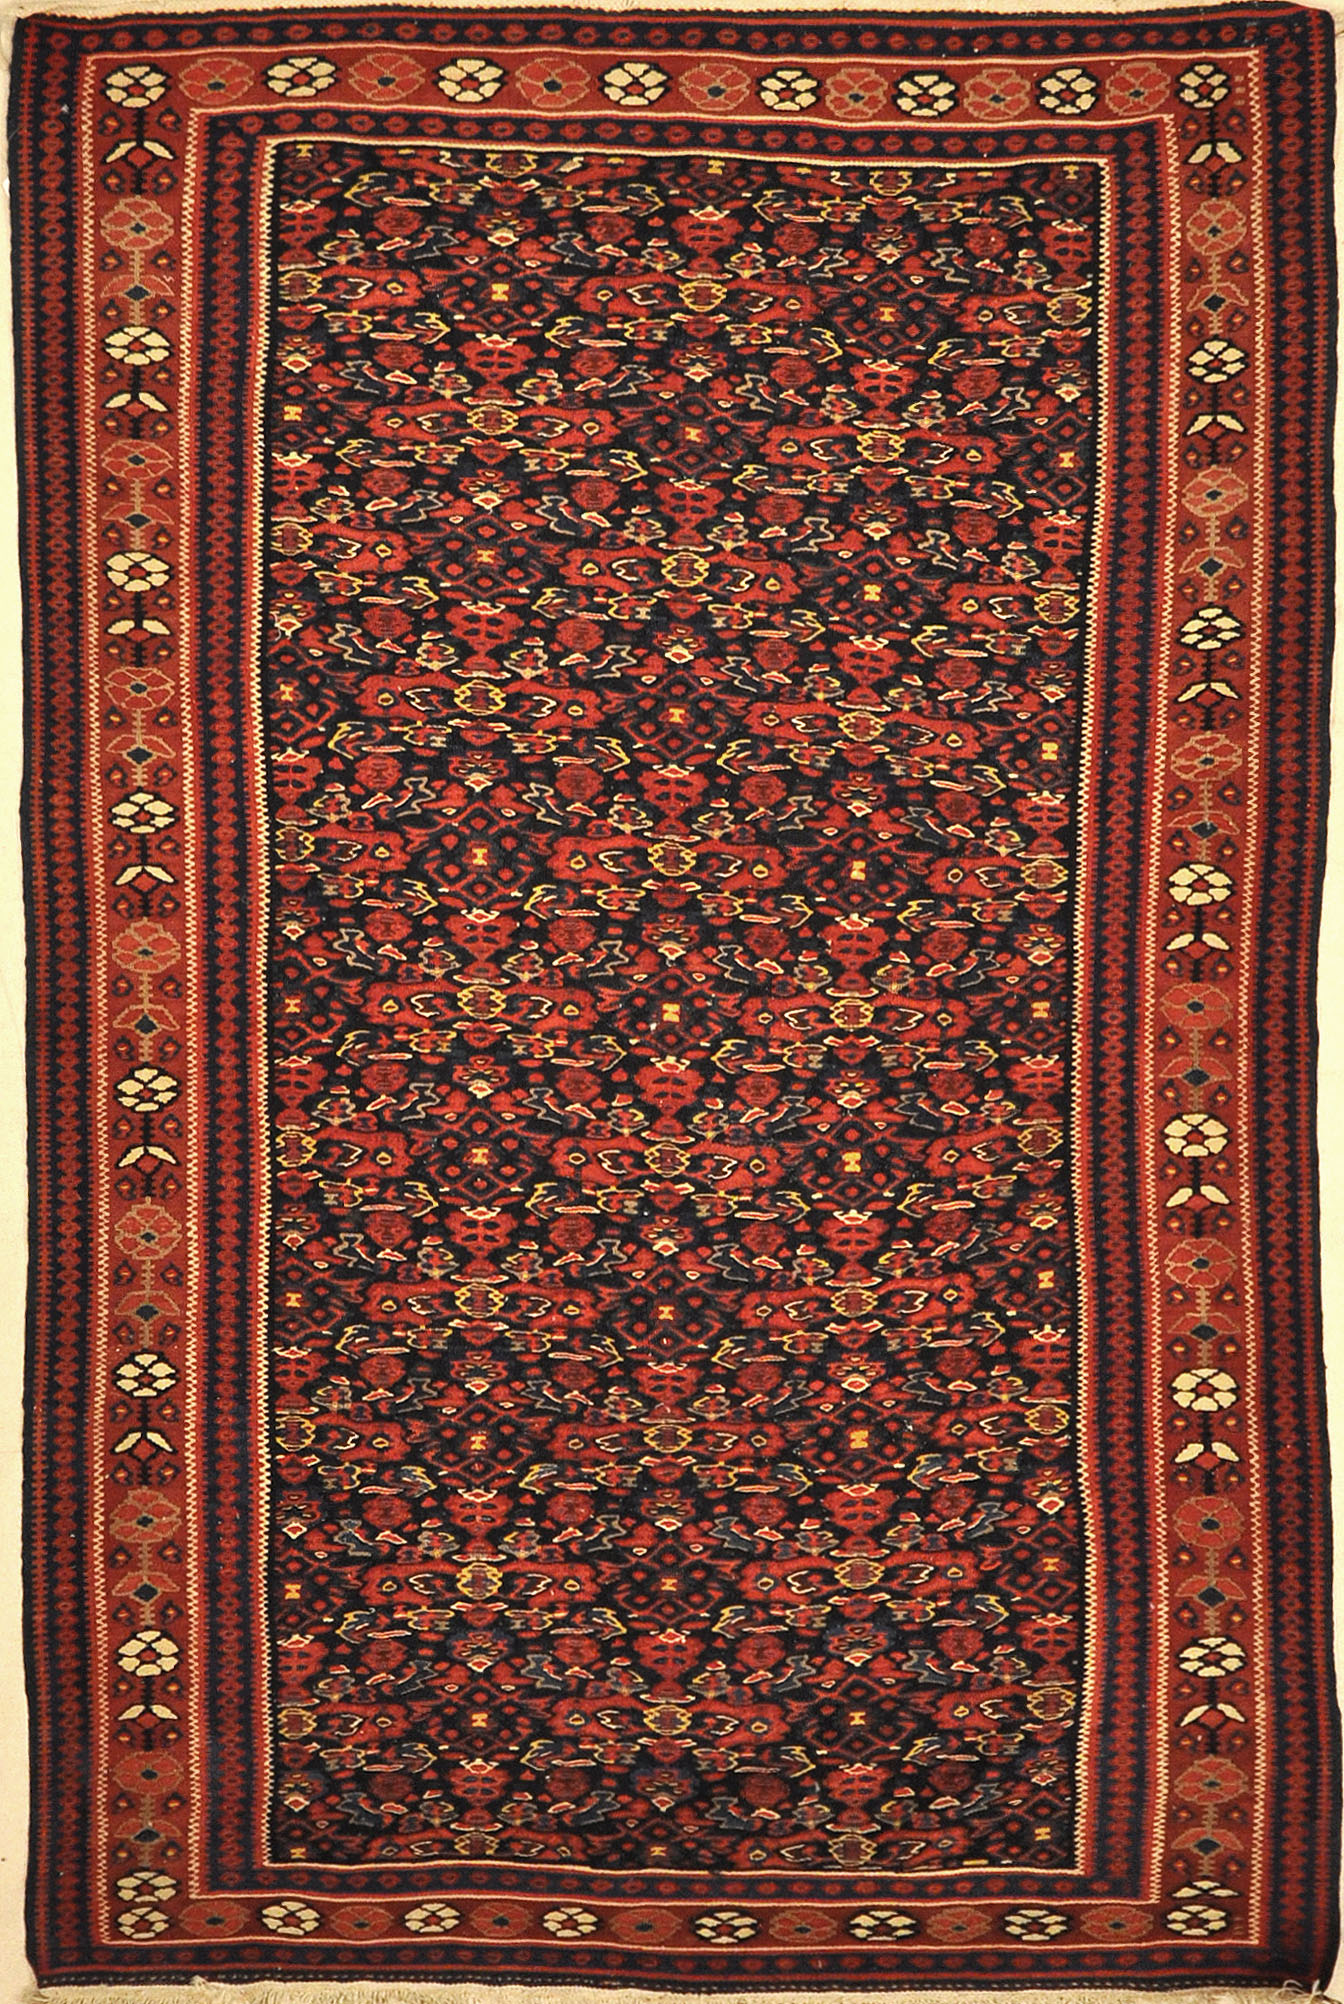 Antique Bijar Kelim Rug. A piece of genuine authentic woven carpet art sold by Santa Barbara Design Center, Rugs and More.